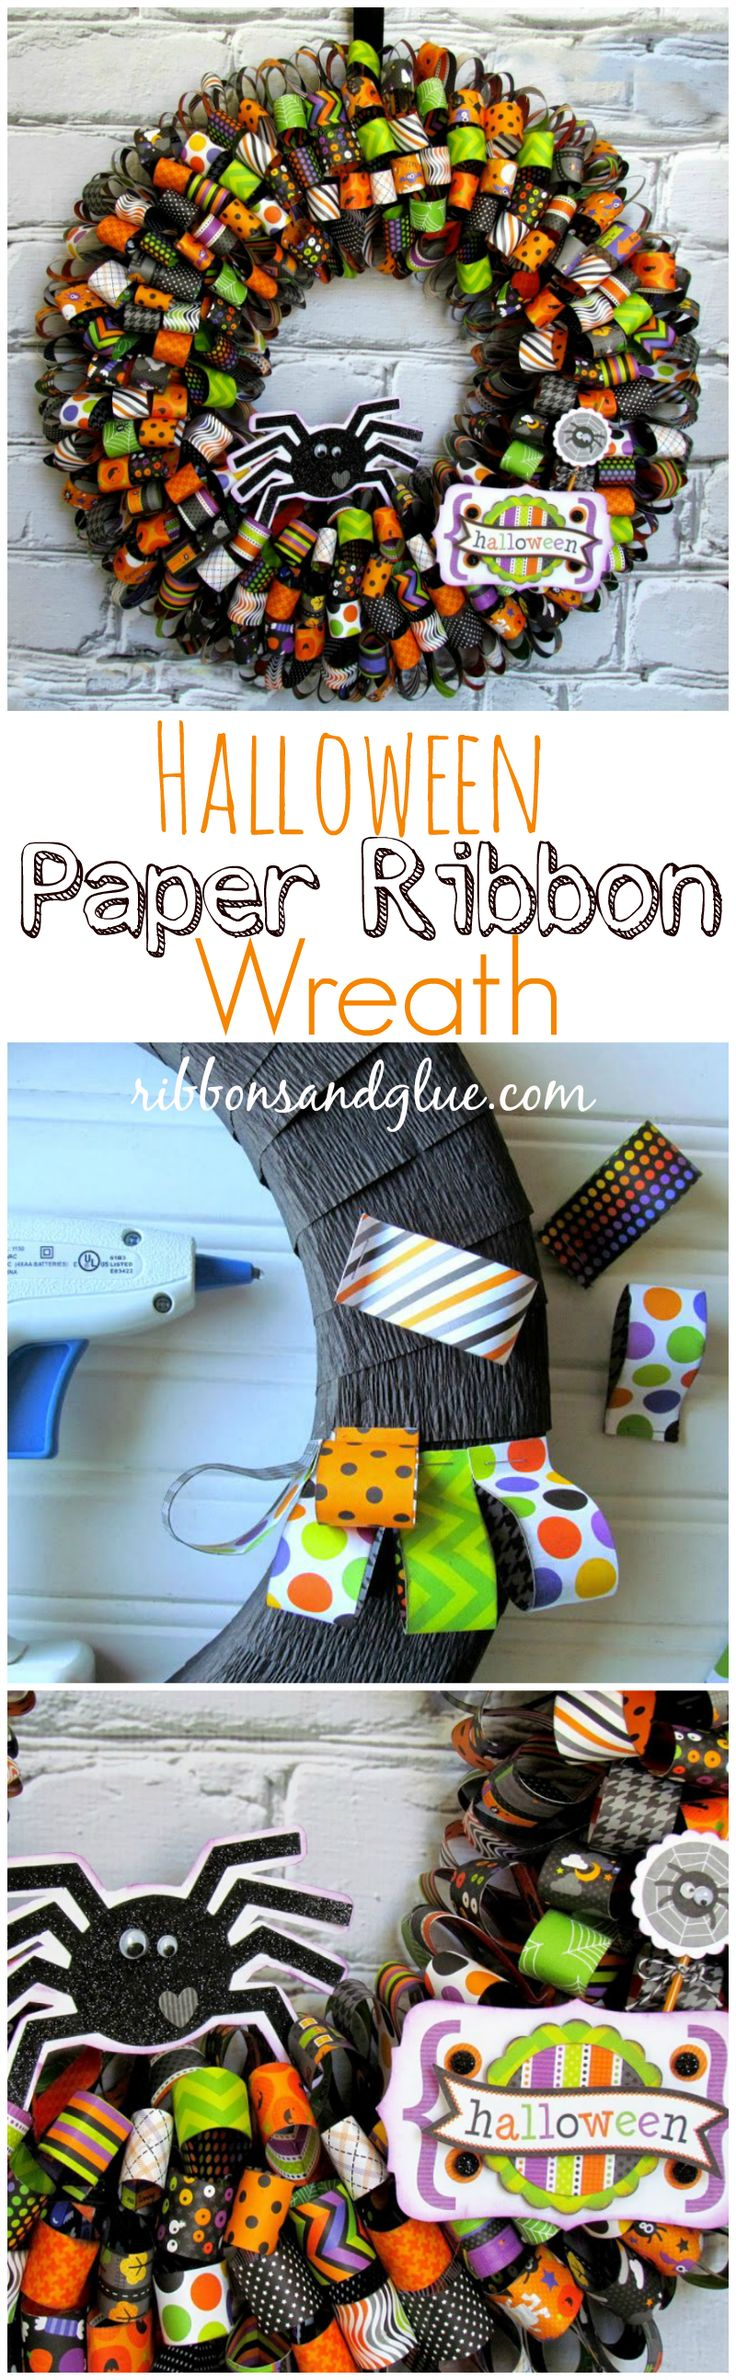 17 best ideas about halloween paper crafts paper 17 best ideas about halloween paper crafts paper halloween witch party and halloween art